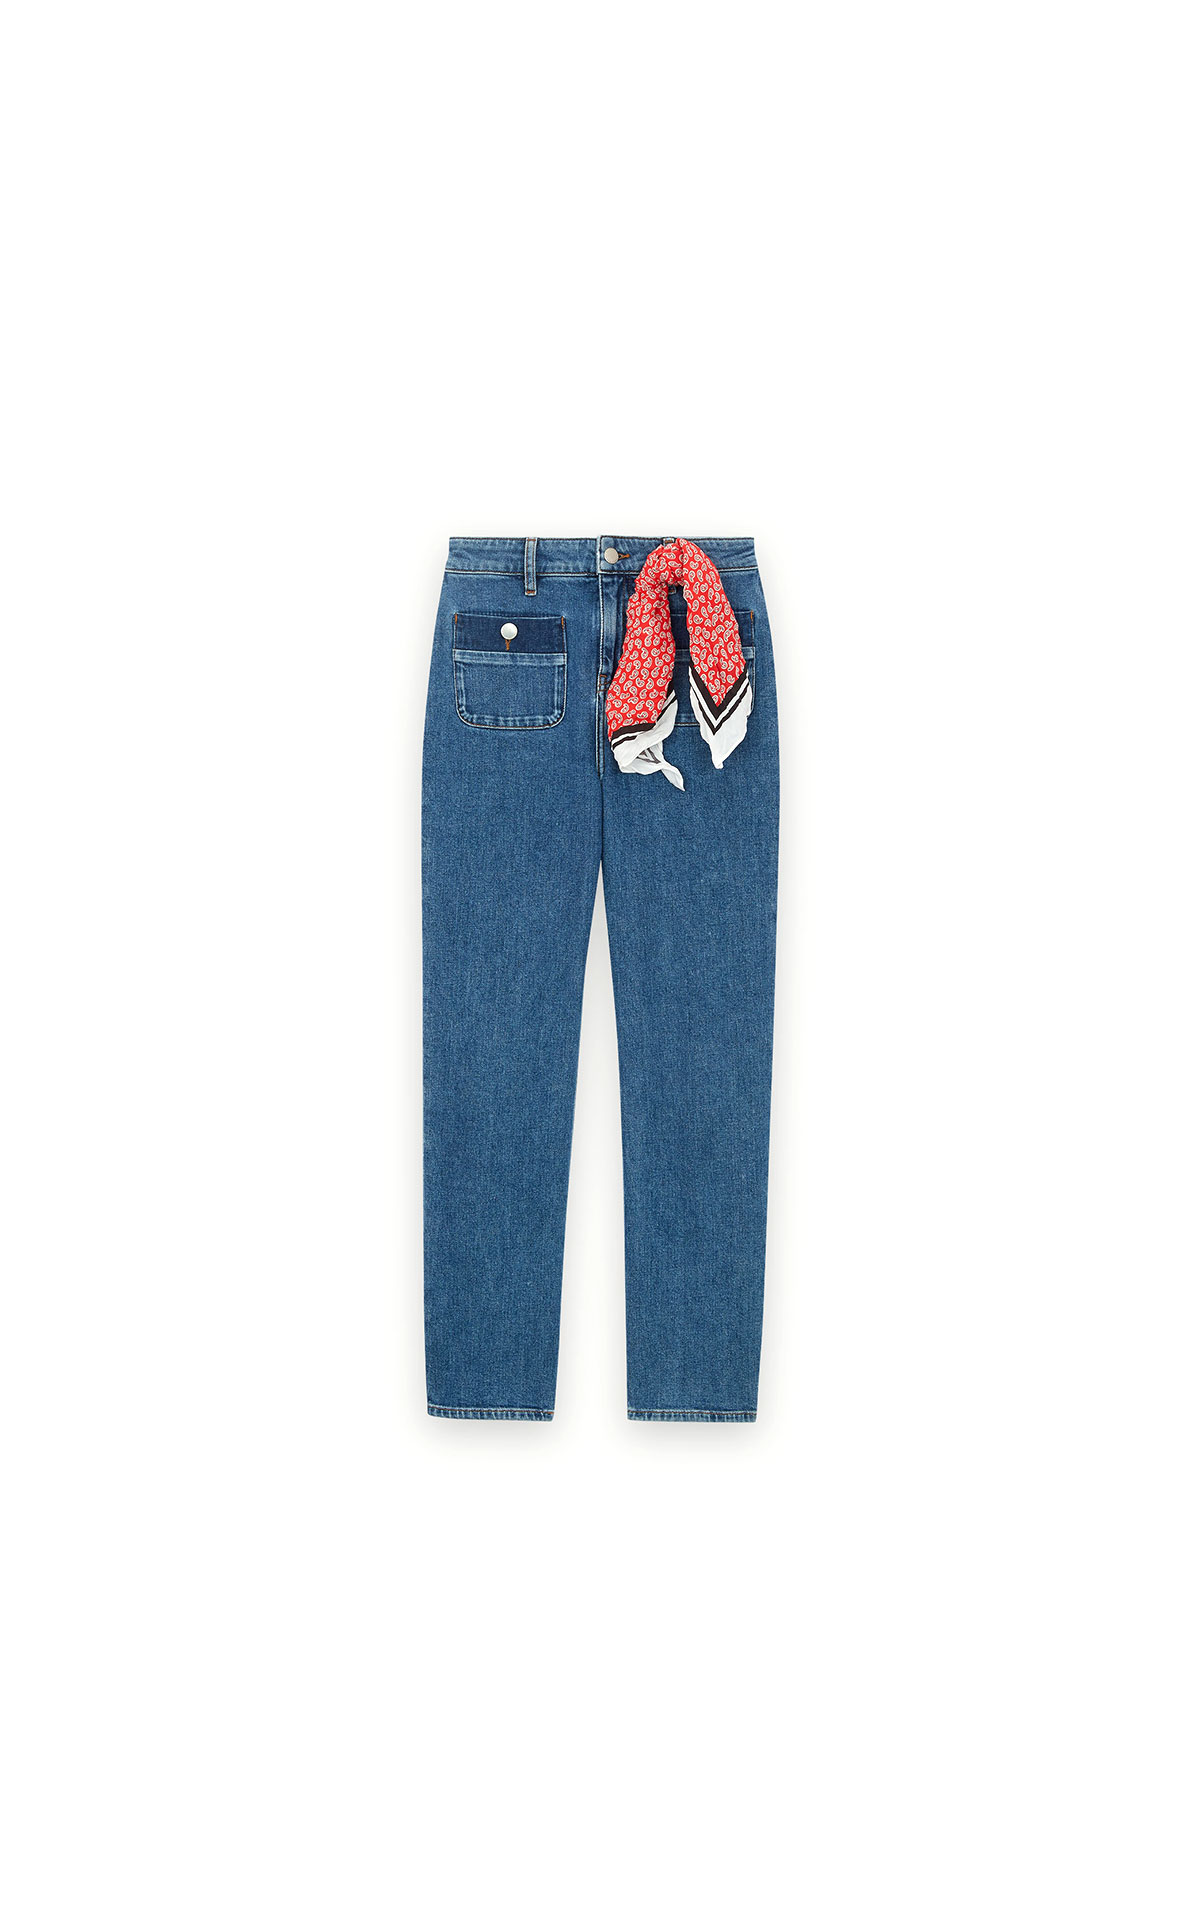 Maje 7/8 faded jeans at The Bicester Village Shopping Collection